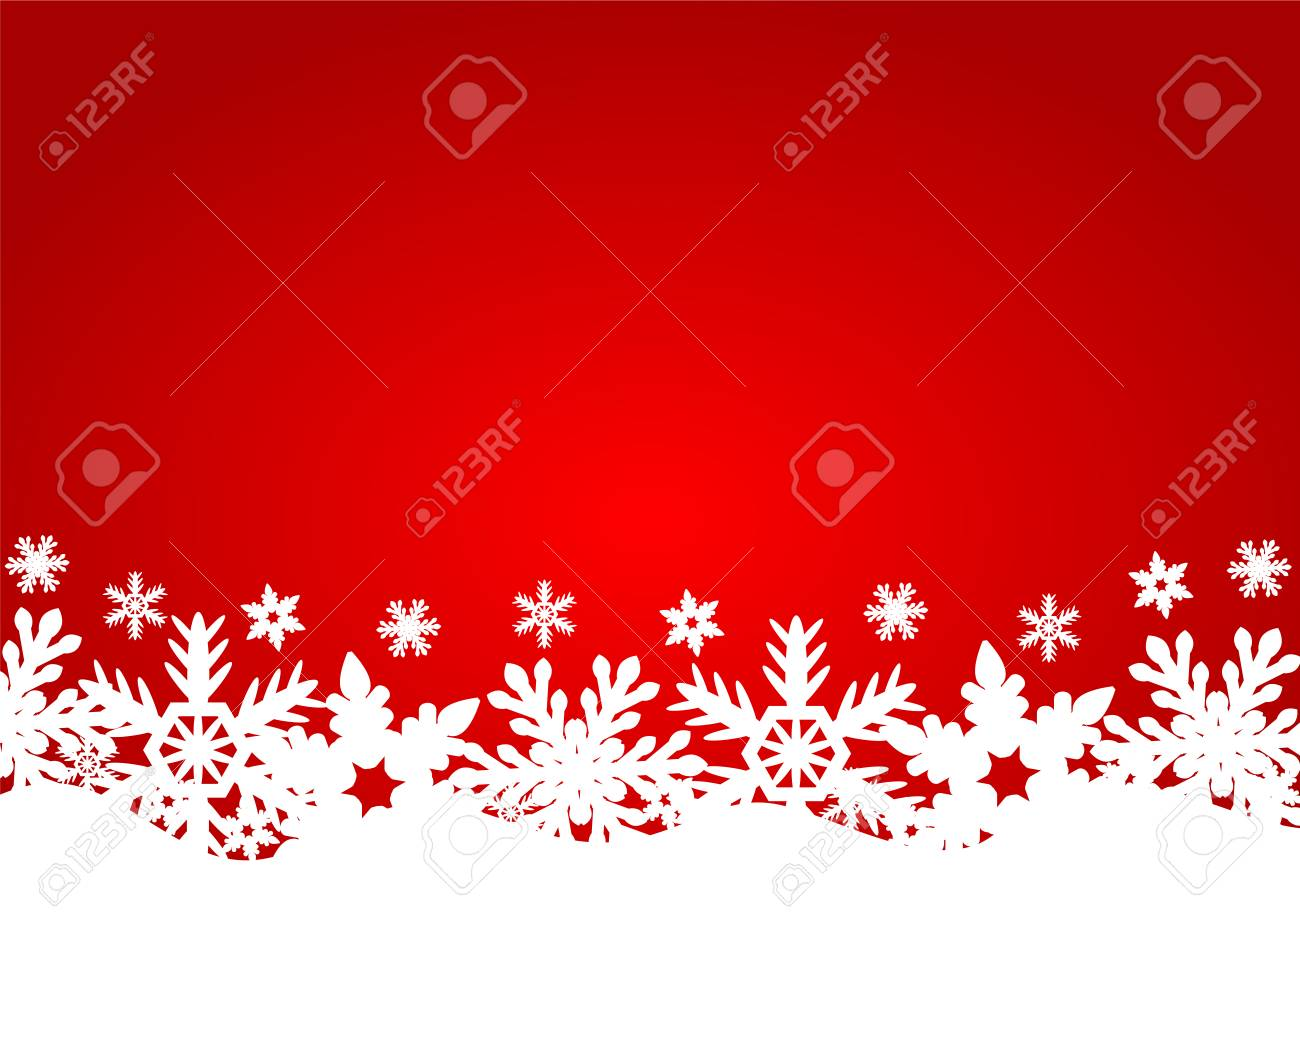 Christmas red background - 34268993